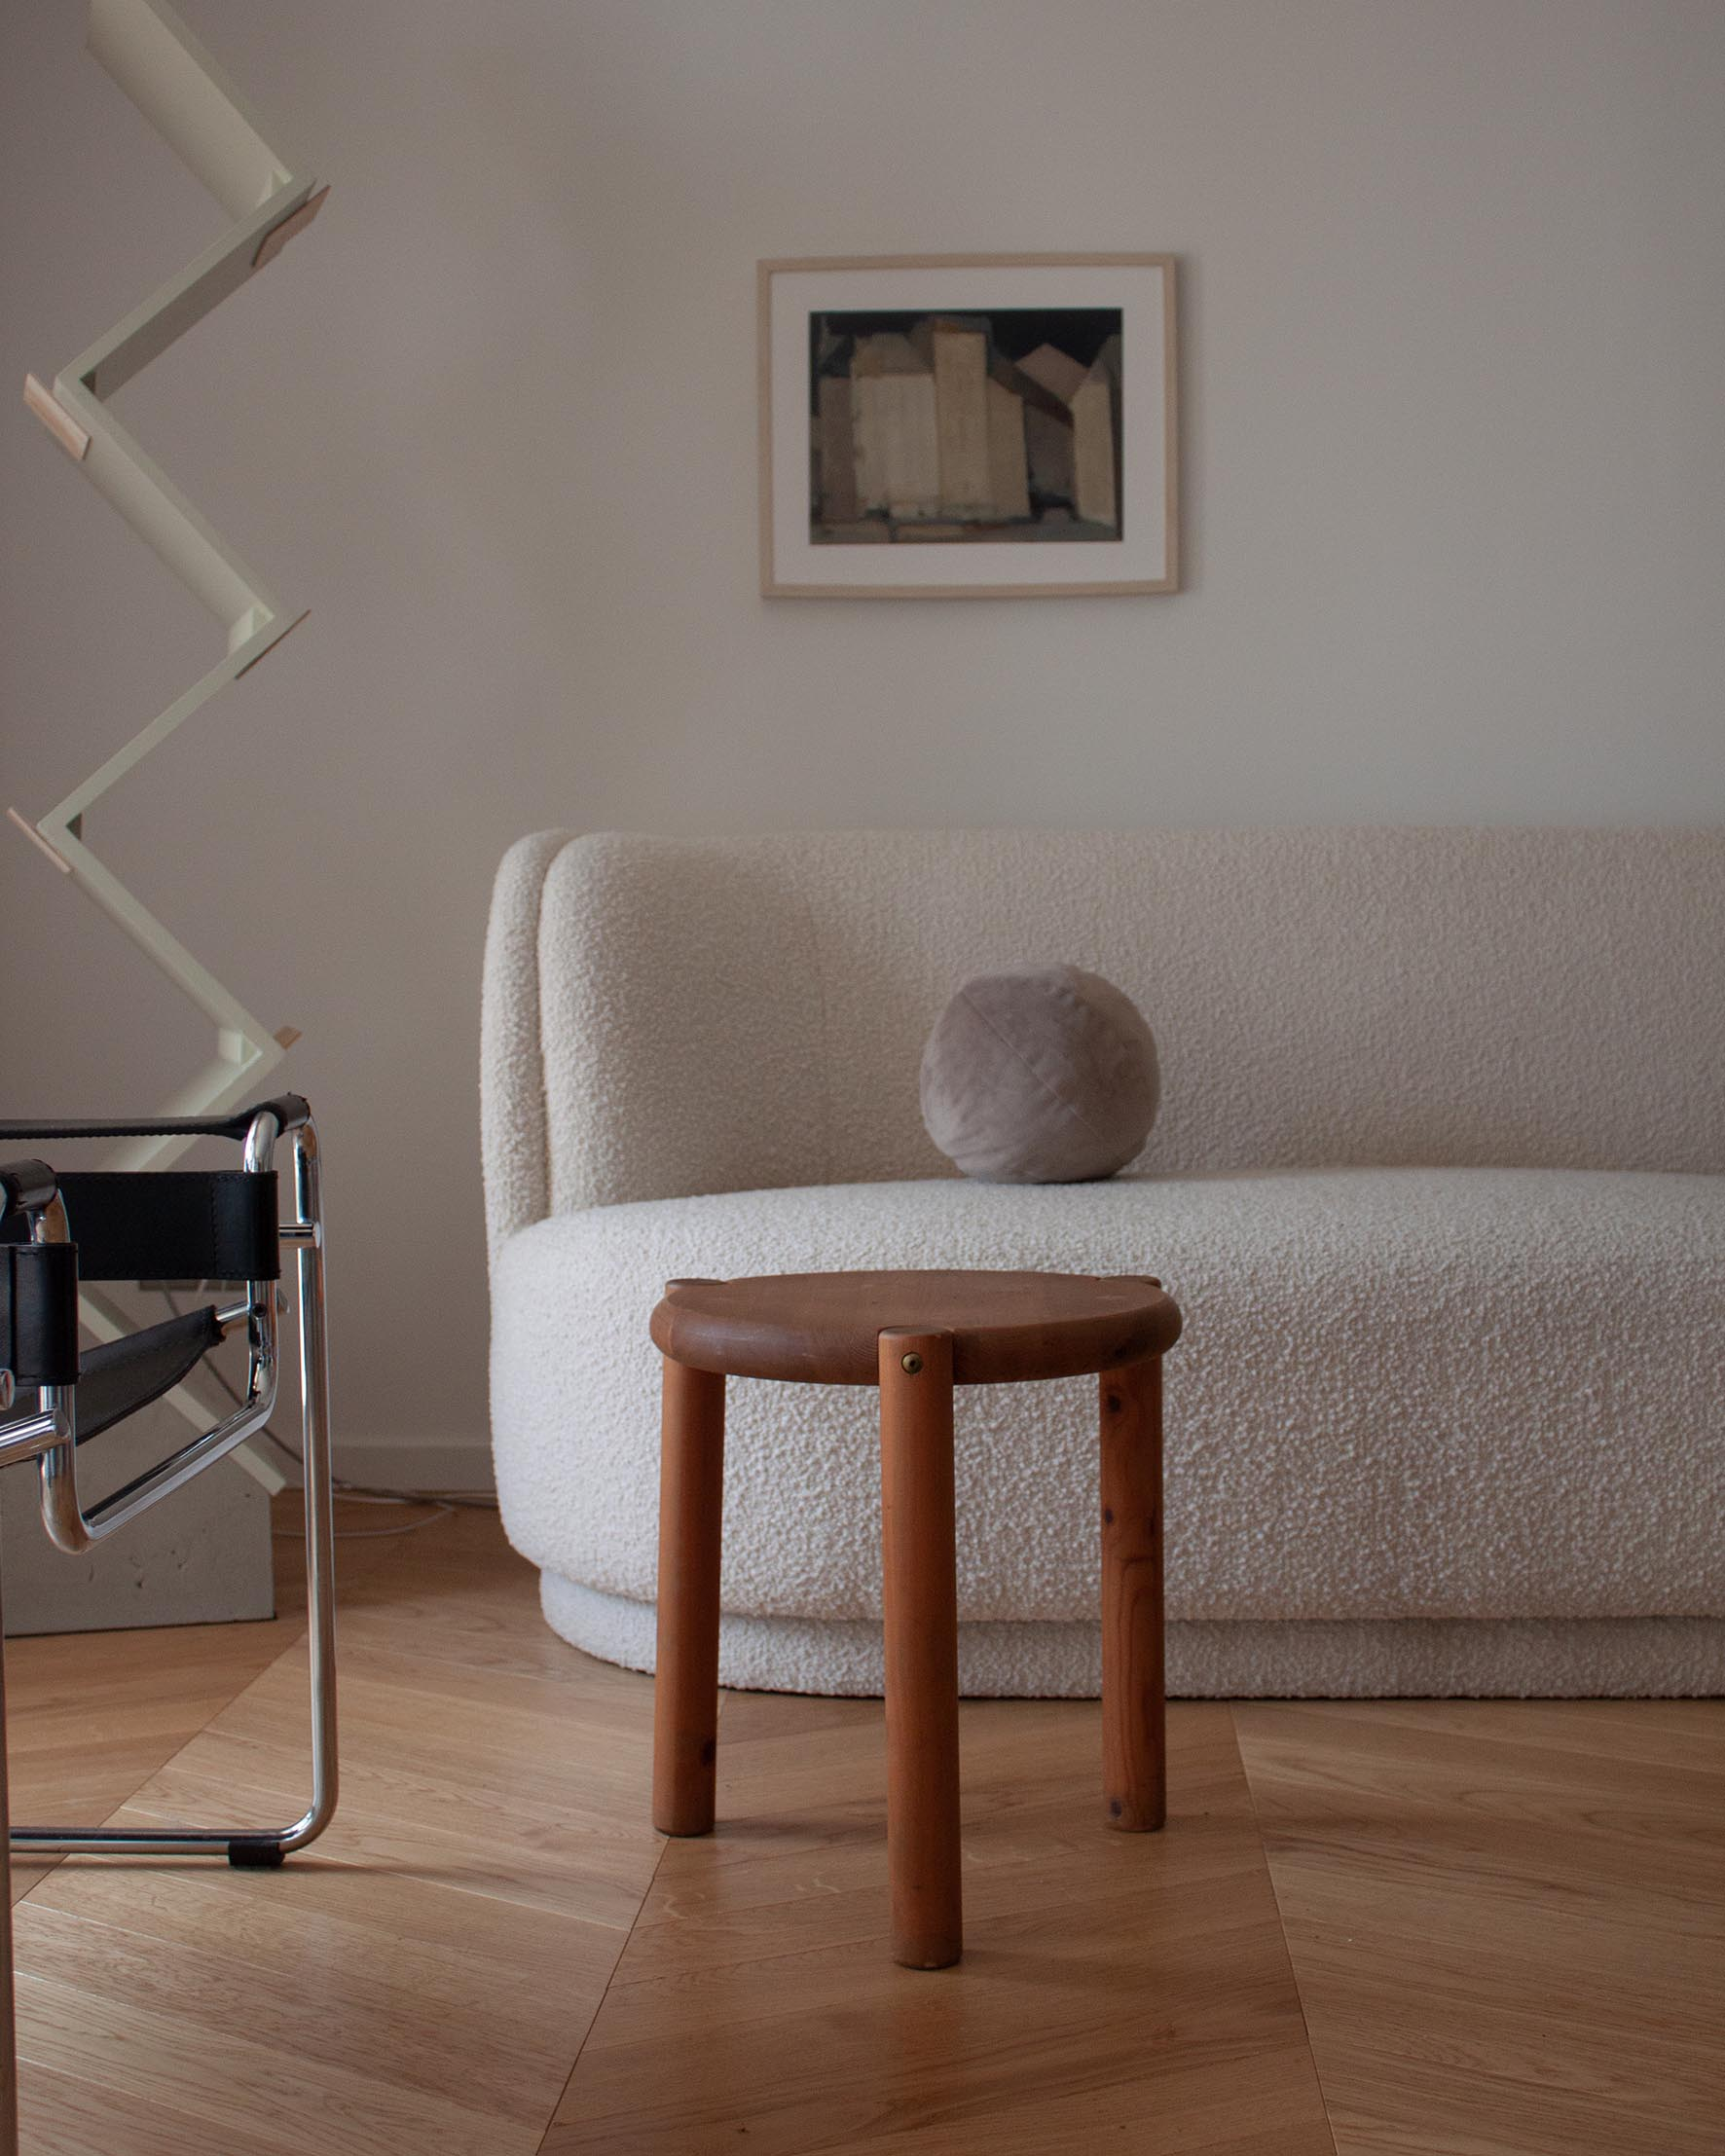 ZWEI finds gallery rainer saumiller pine Table or stool_0000_Rainer Daumiller Side table pine